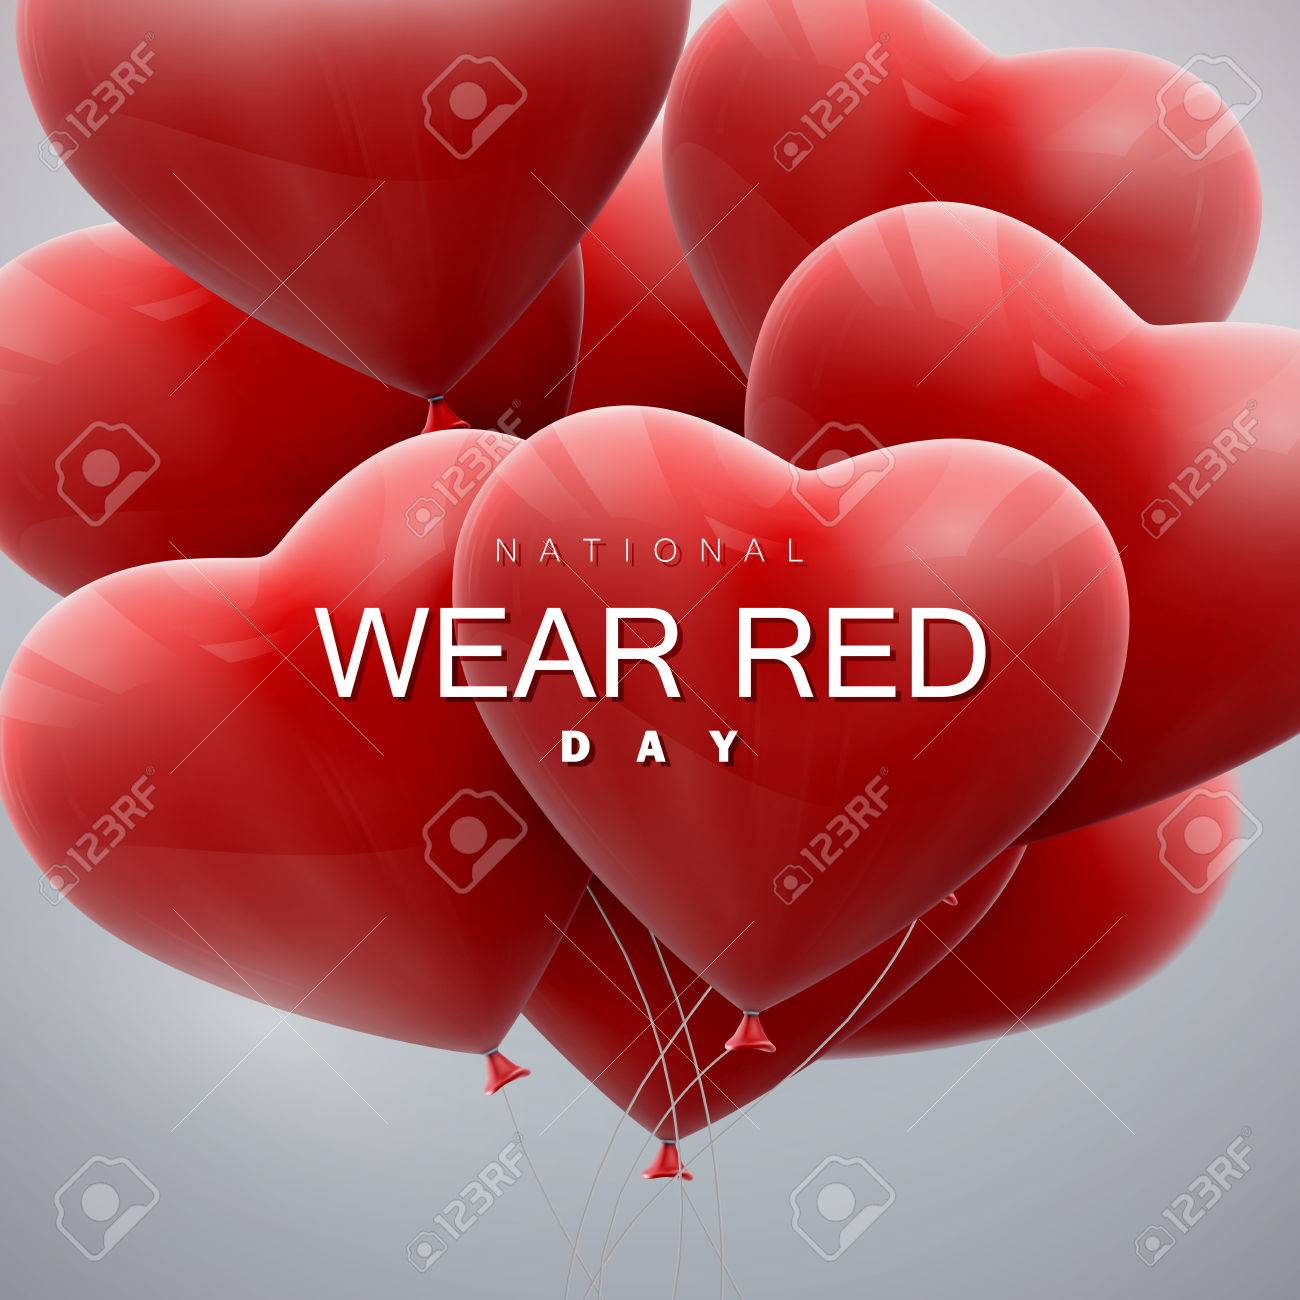 National wear red day. Vector holiday illustration of flying bunch of balloon hearts. - 52042782